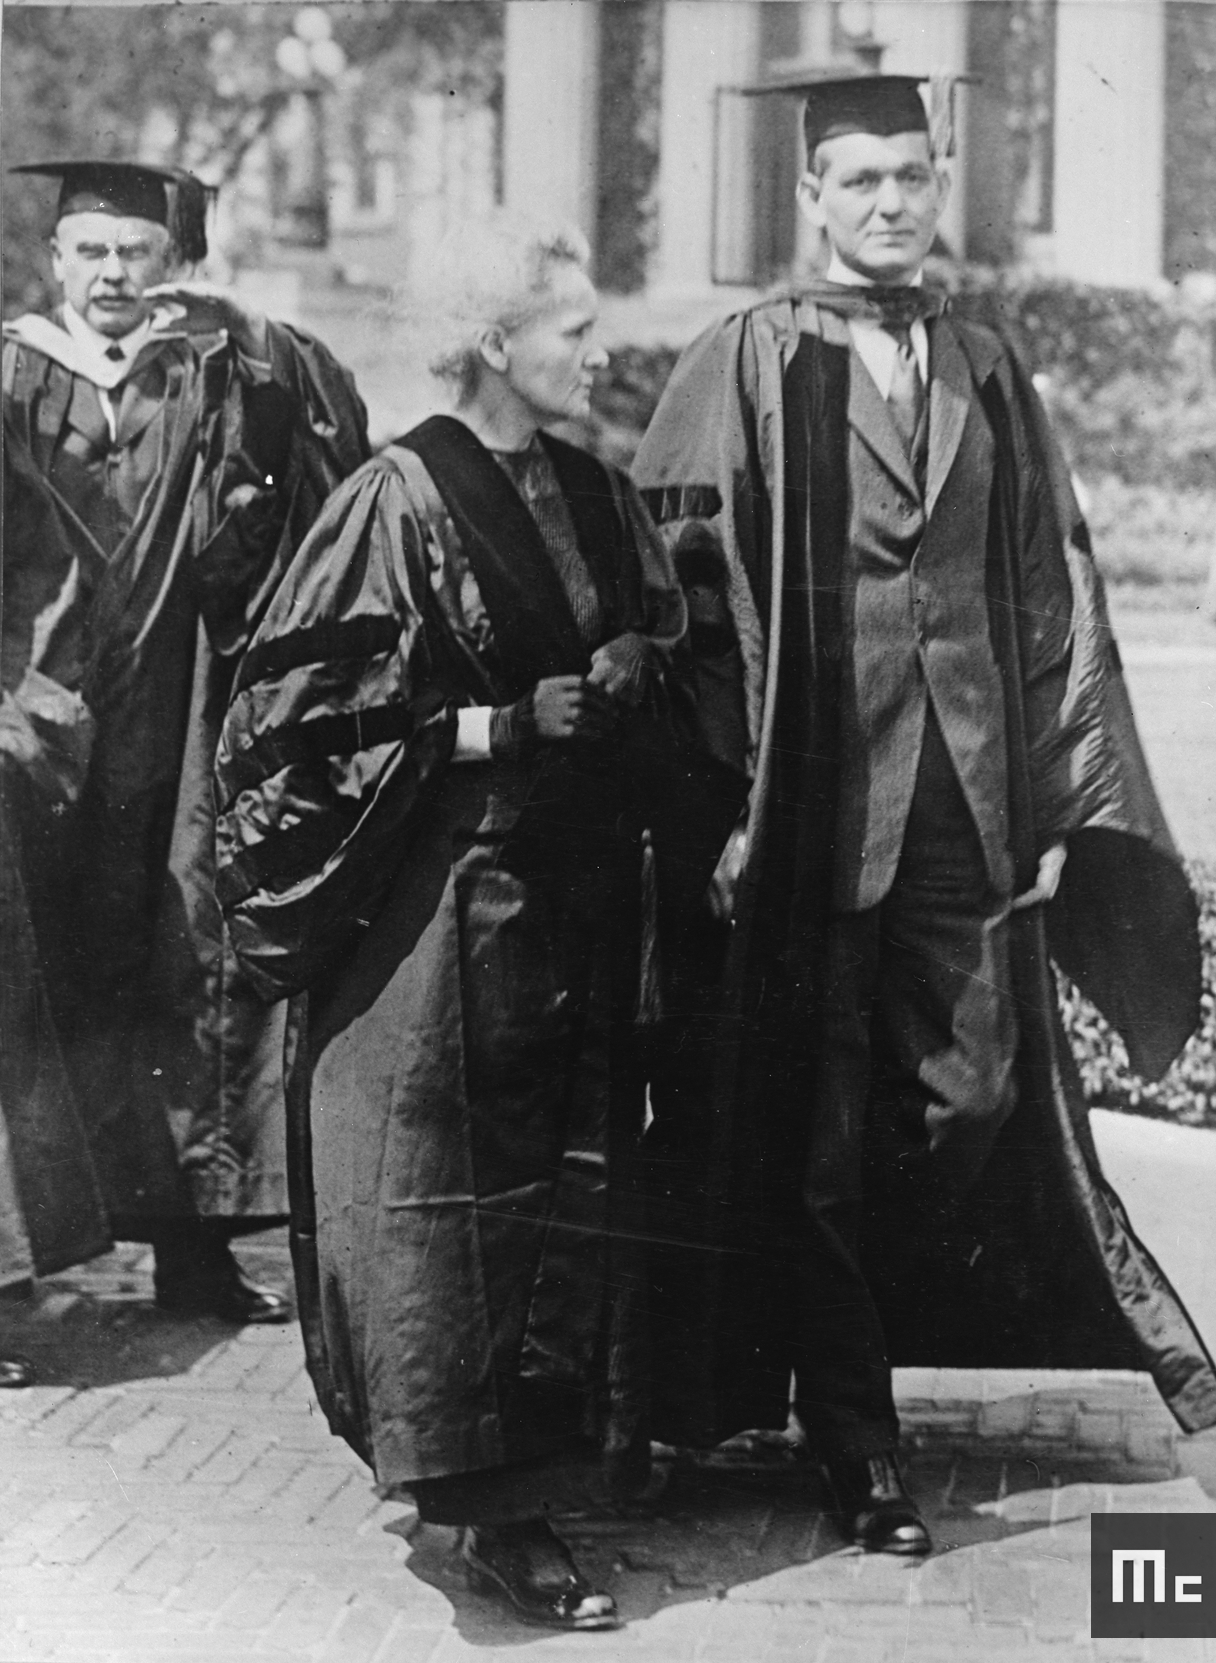 Marie Curie with Dean Pegram, Dean of the School of Engineering at Columbia University, 1921 (Source: Musée Curie; coll. ACJC)